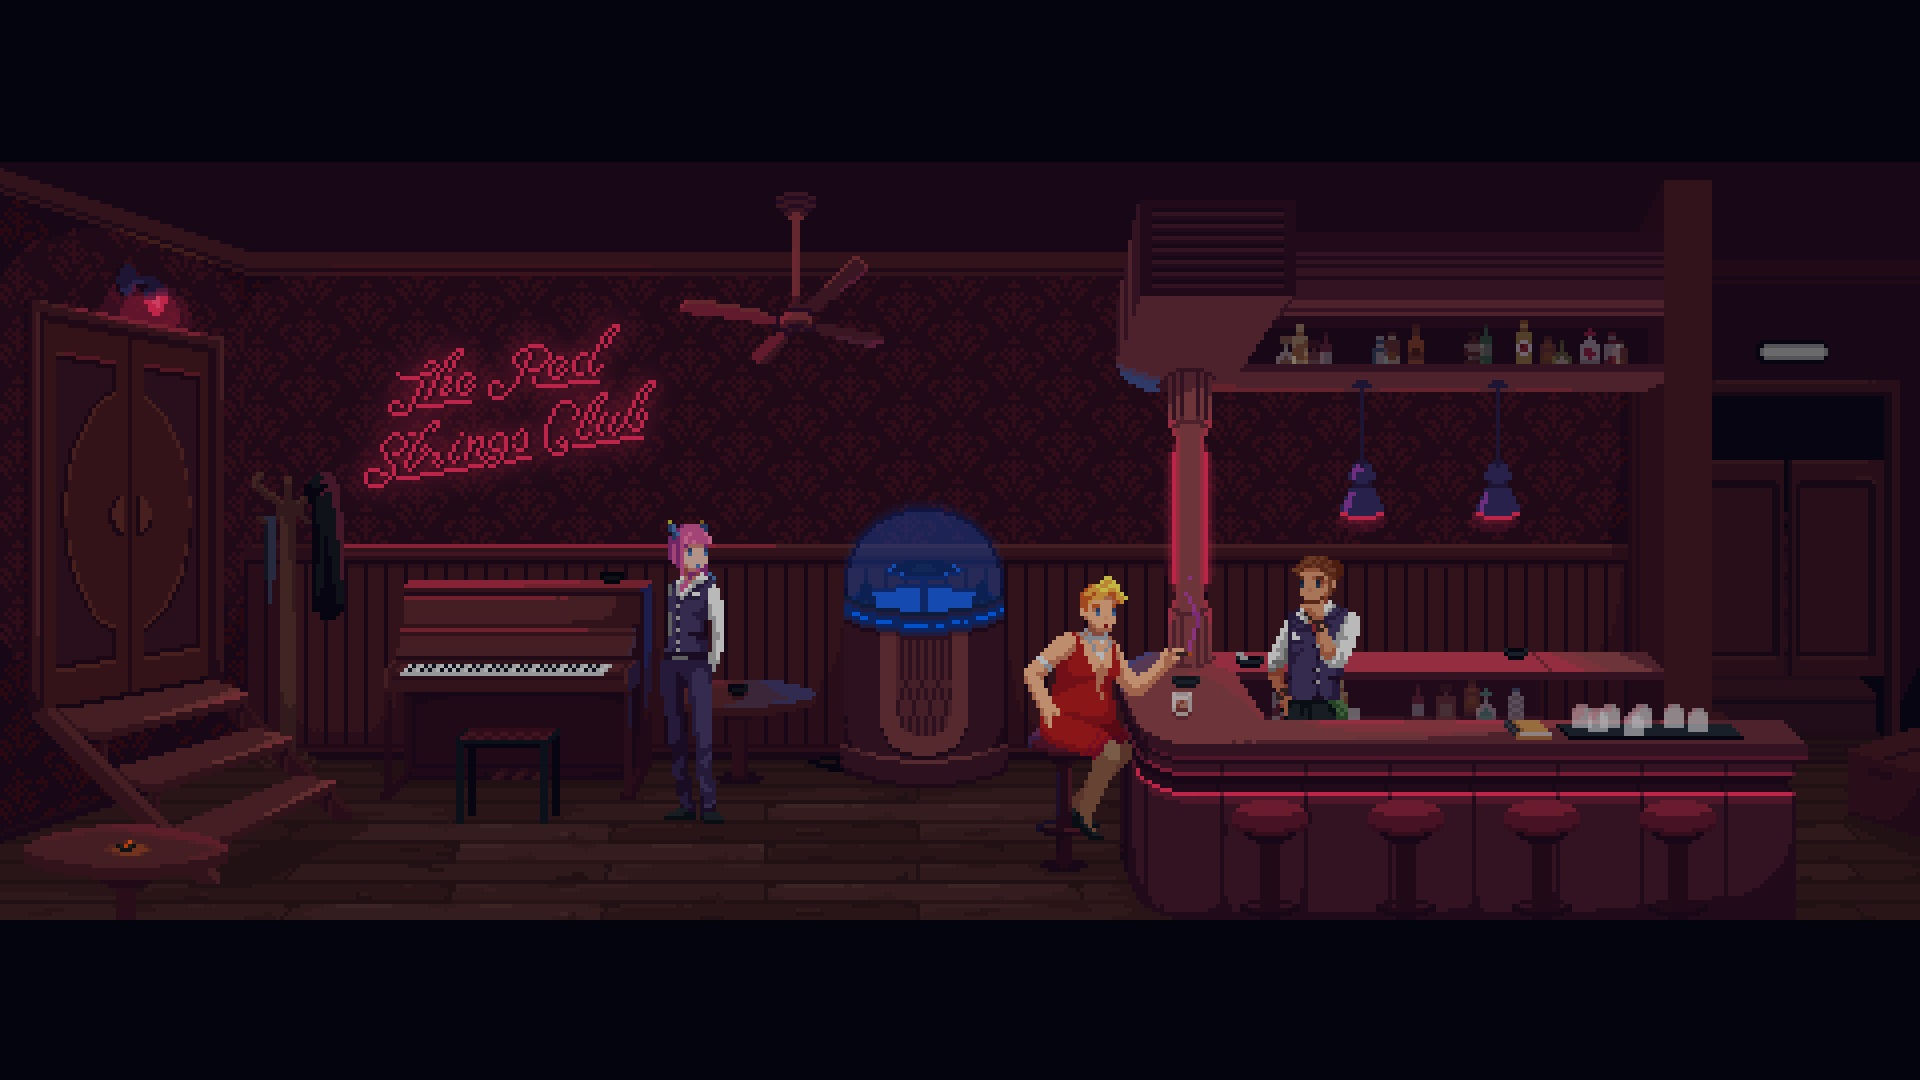 Contest: Win a Switch copy of The Red Strings Club screenshot